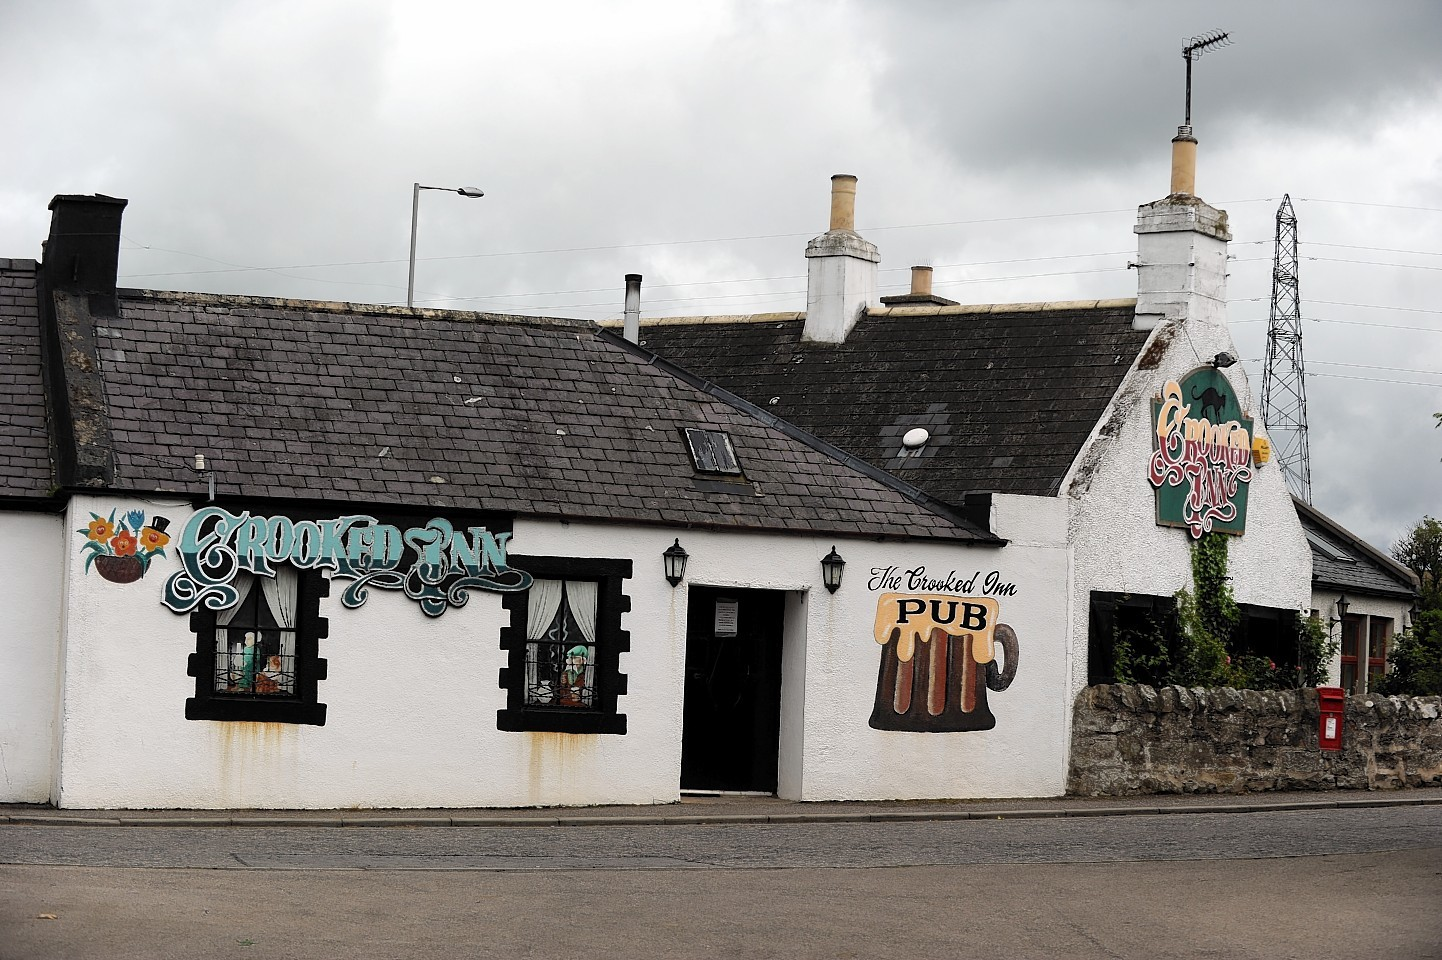 The Crooked Inn in Moray is up for sale